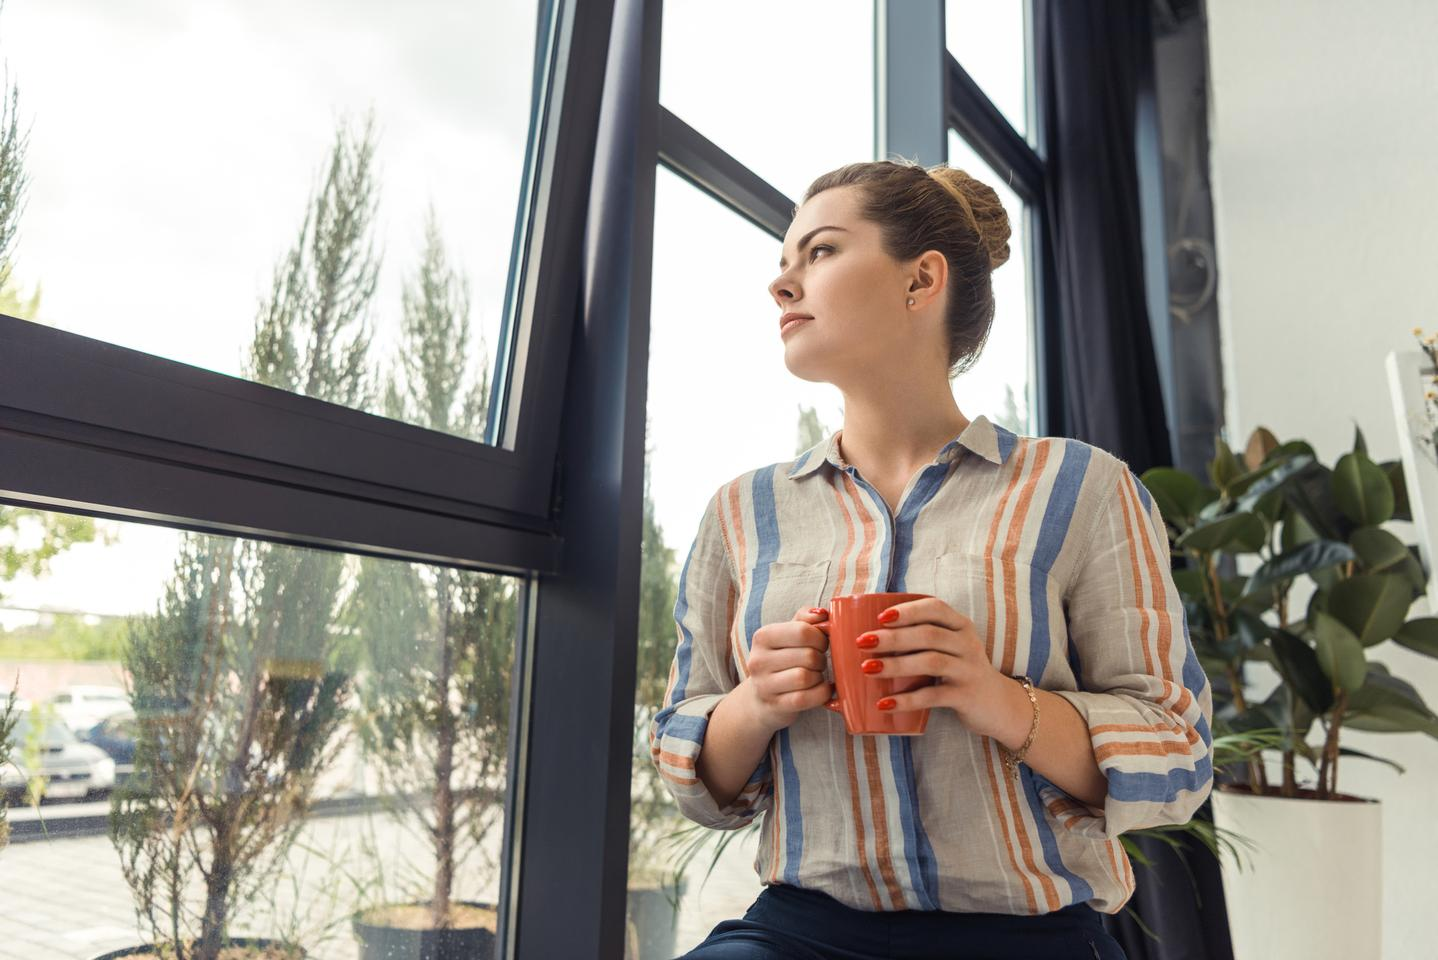 Research shows it is important to give workers autonomy over when they take microbreaks